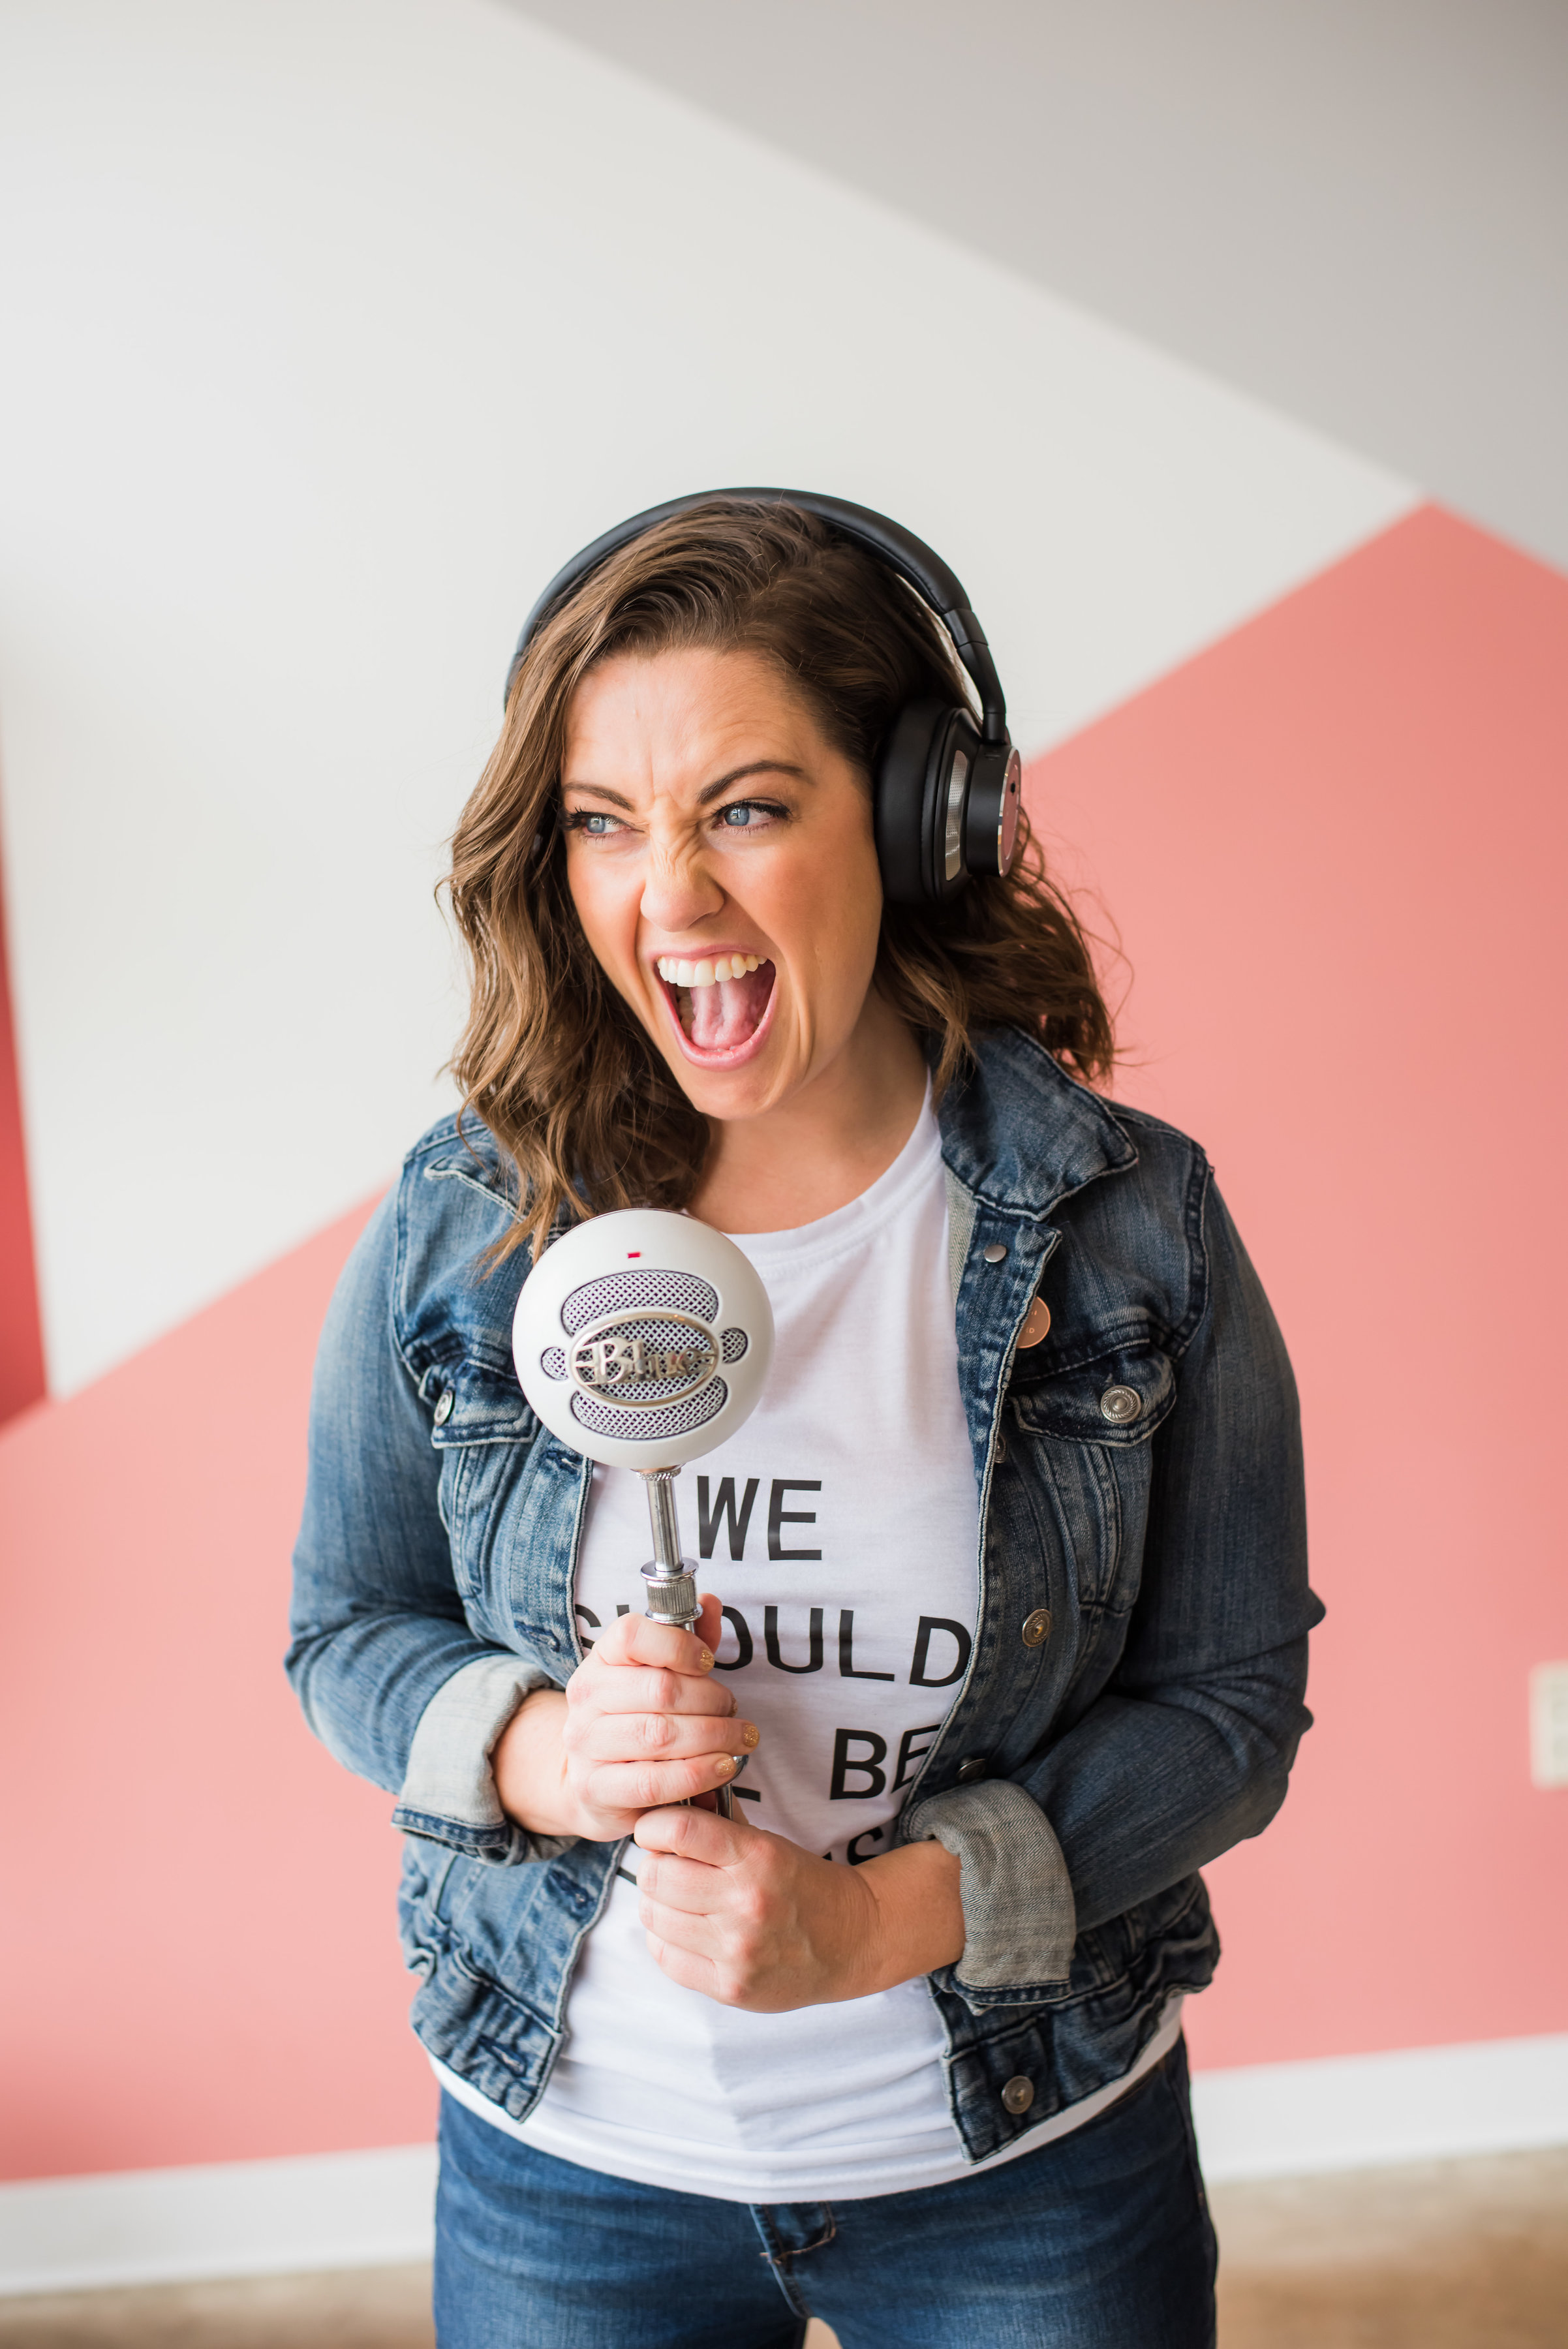 Baily Hancock wearing headphones and shouting playfully into a large microphone